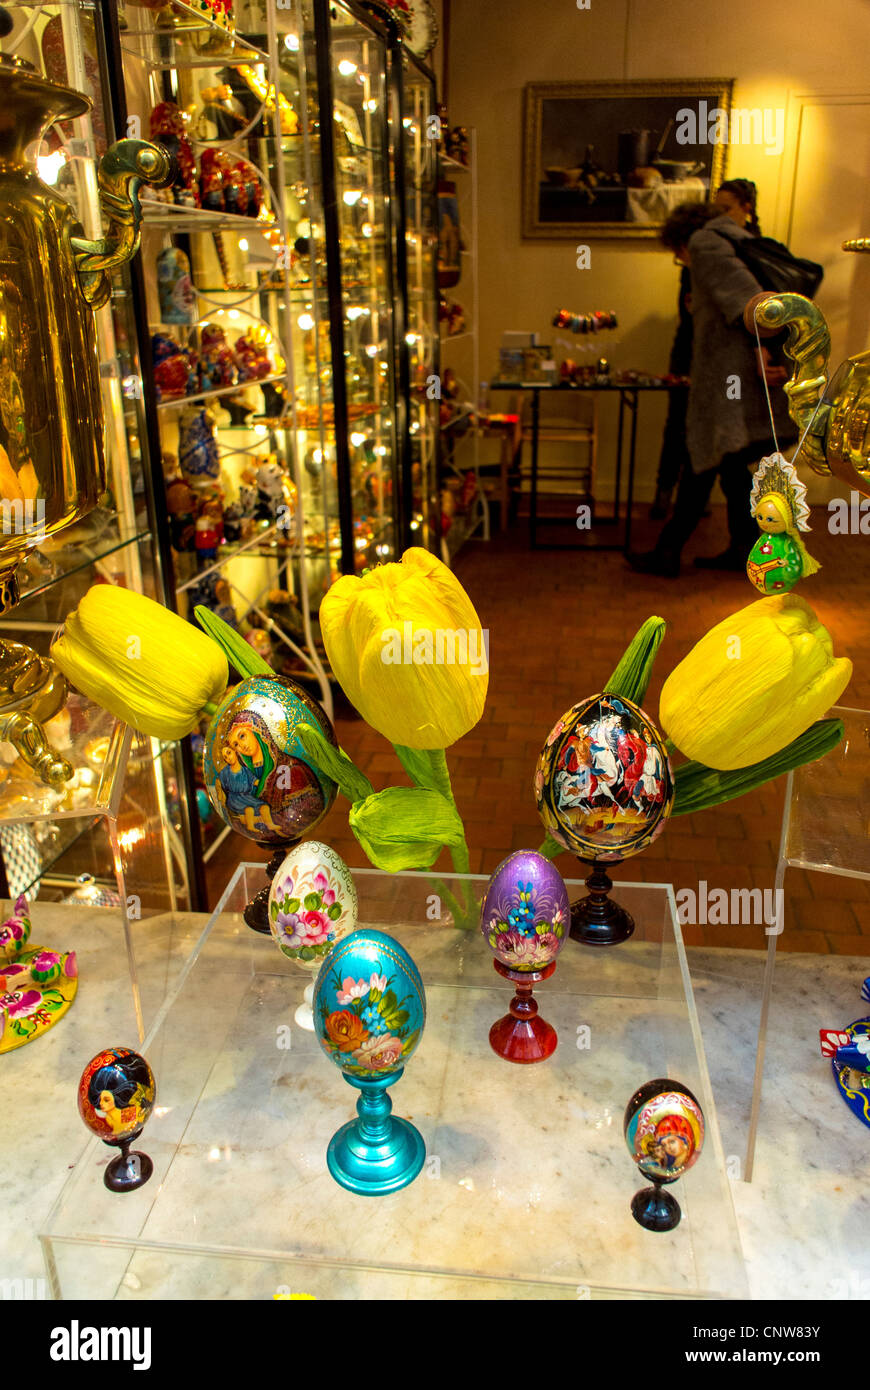 paris france art gallery gift shop window display easter eggs stock photo royalty free. Black Bedroom Furniture Sets. Home Design Ideas